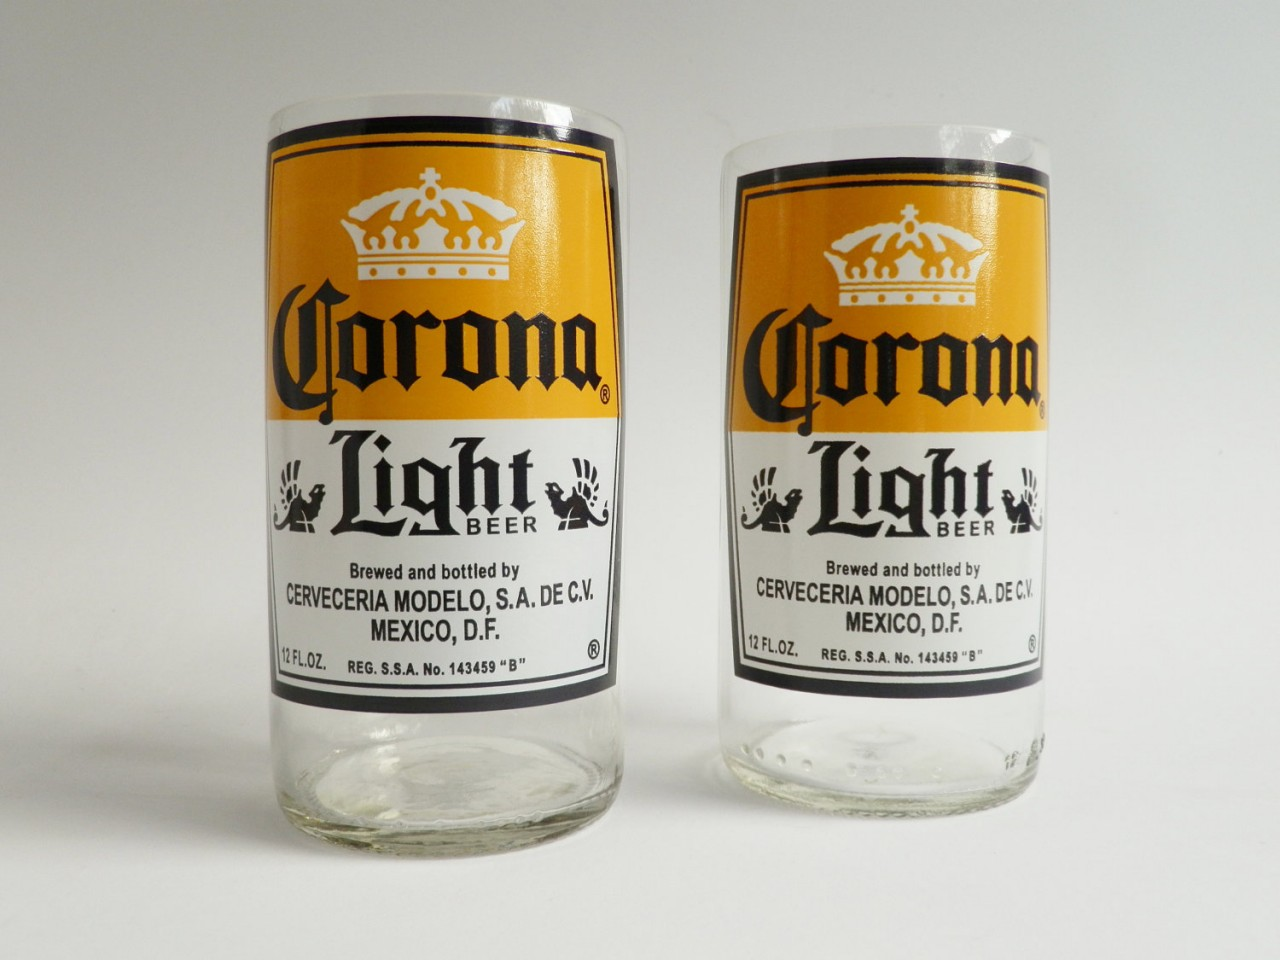 Corona Light Beer Bottle Glass Tumblers 2